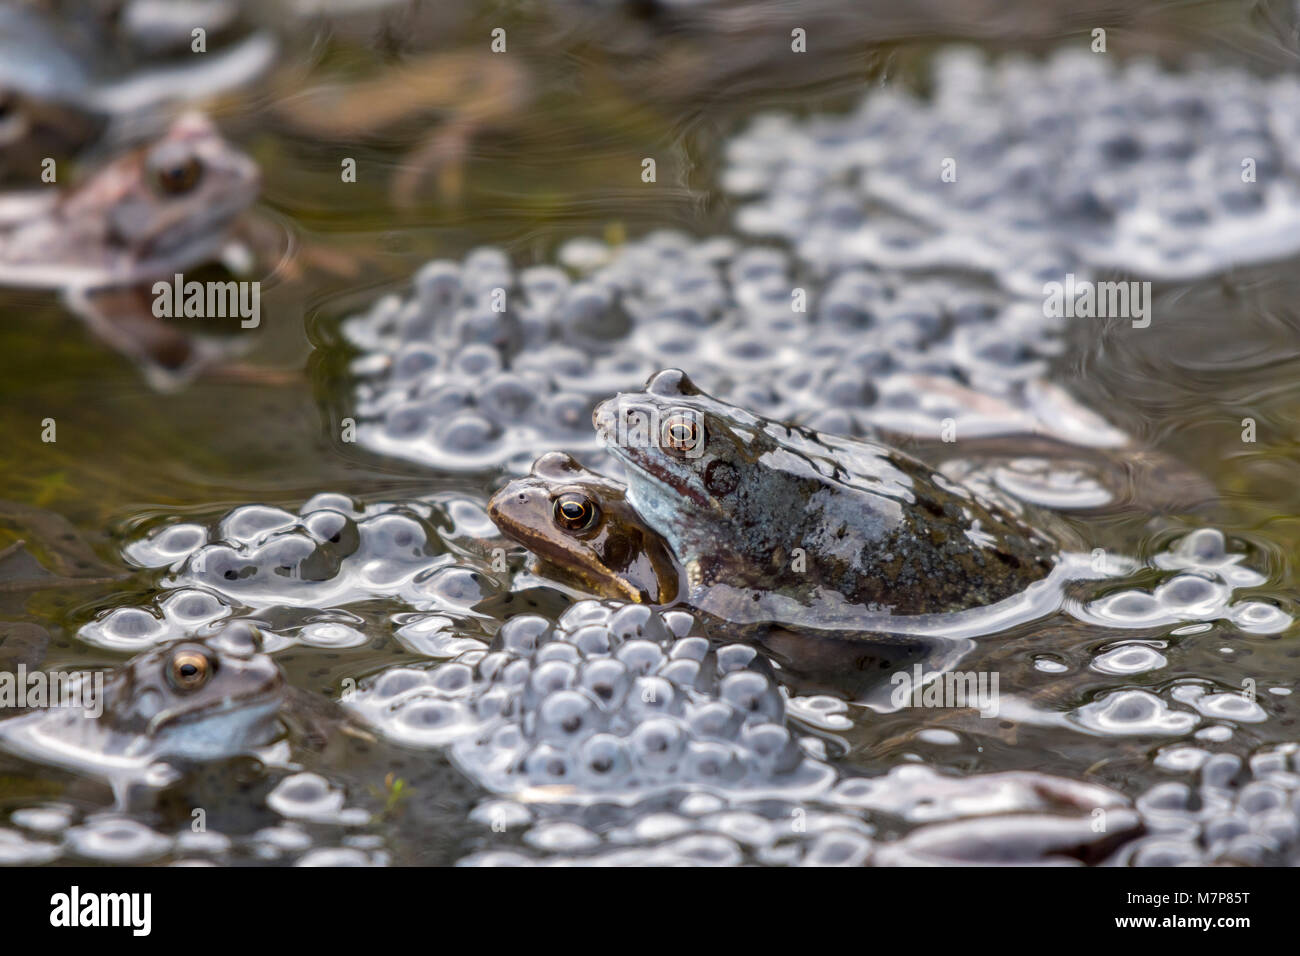 Commons Frogs mating in a garden pond producing frog spawn - Stock Image